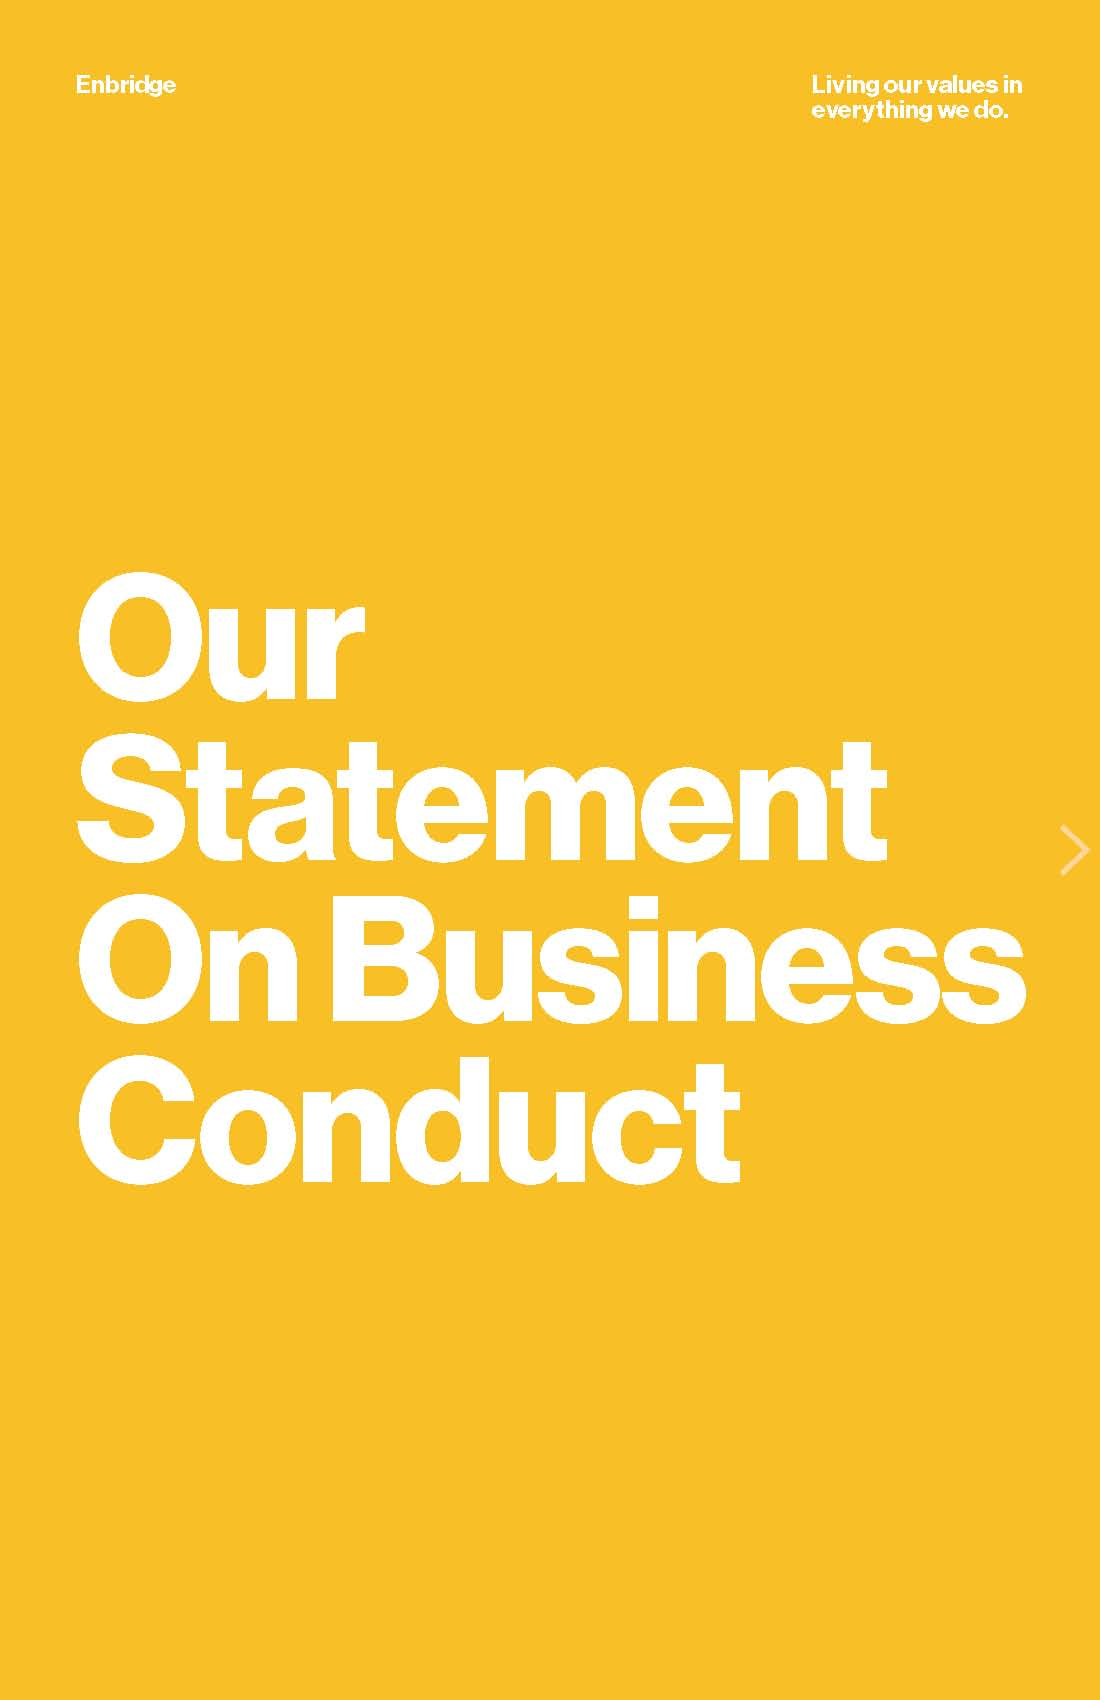 Our Statement On Business Conduct